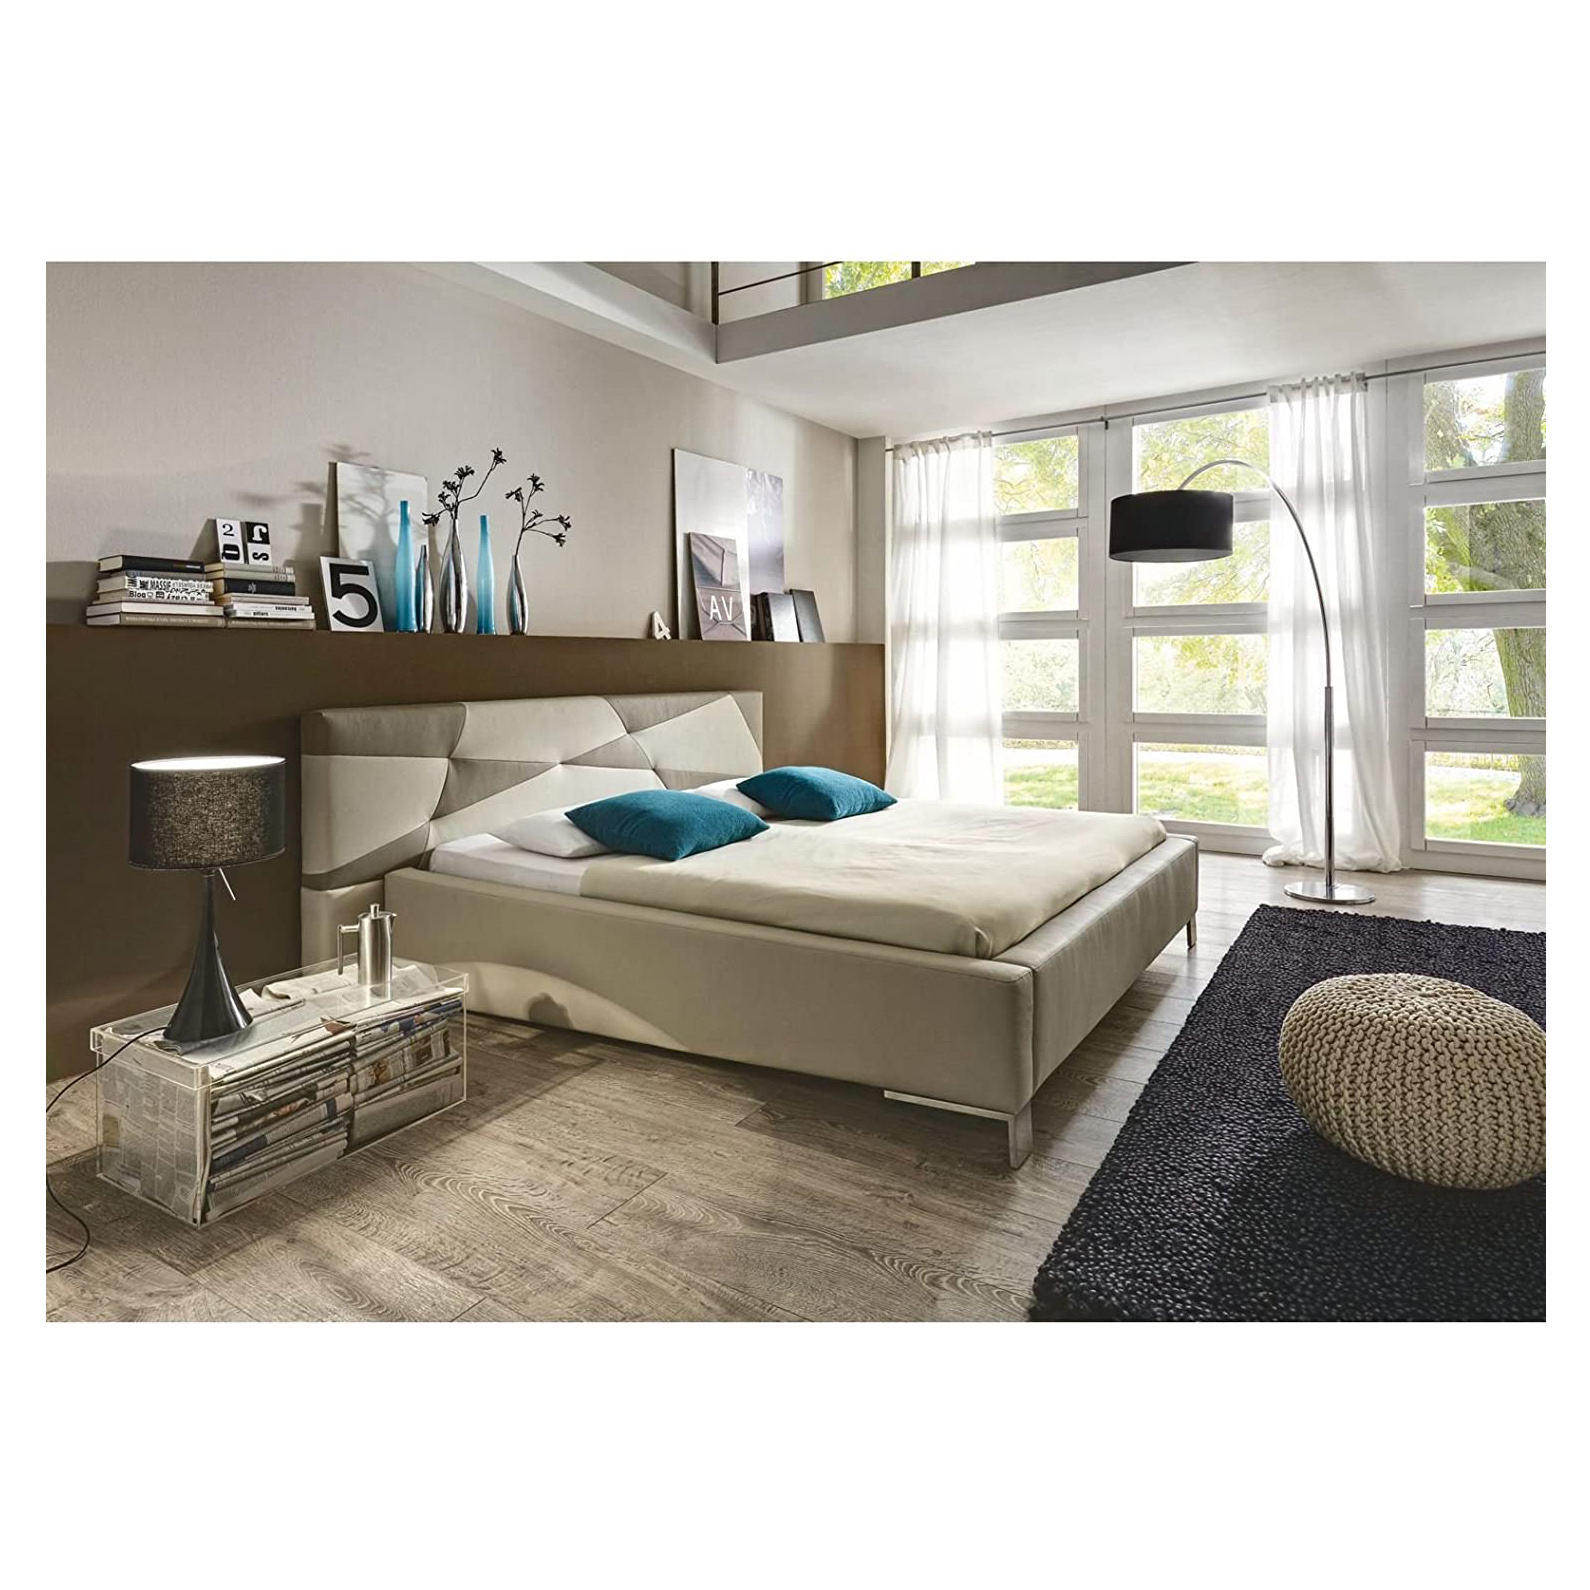 SinoMax XORA Design double bed 180 x 200 cm lying surface faux leather